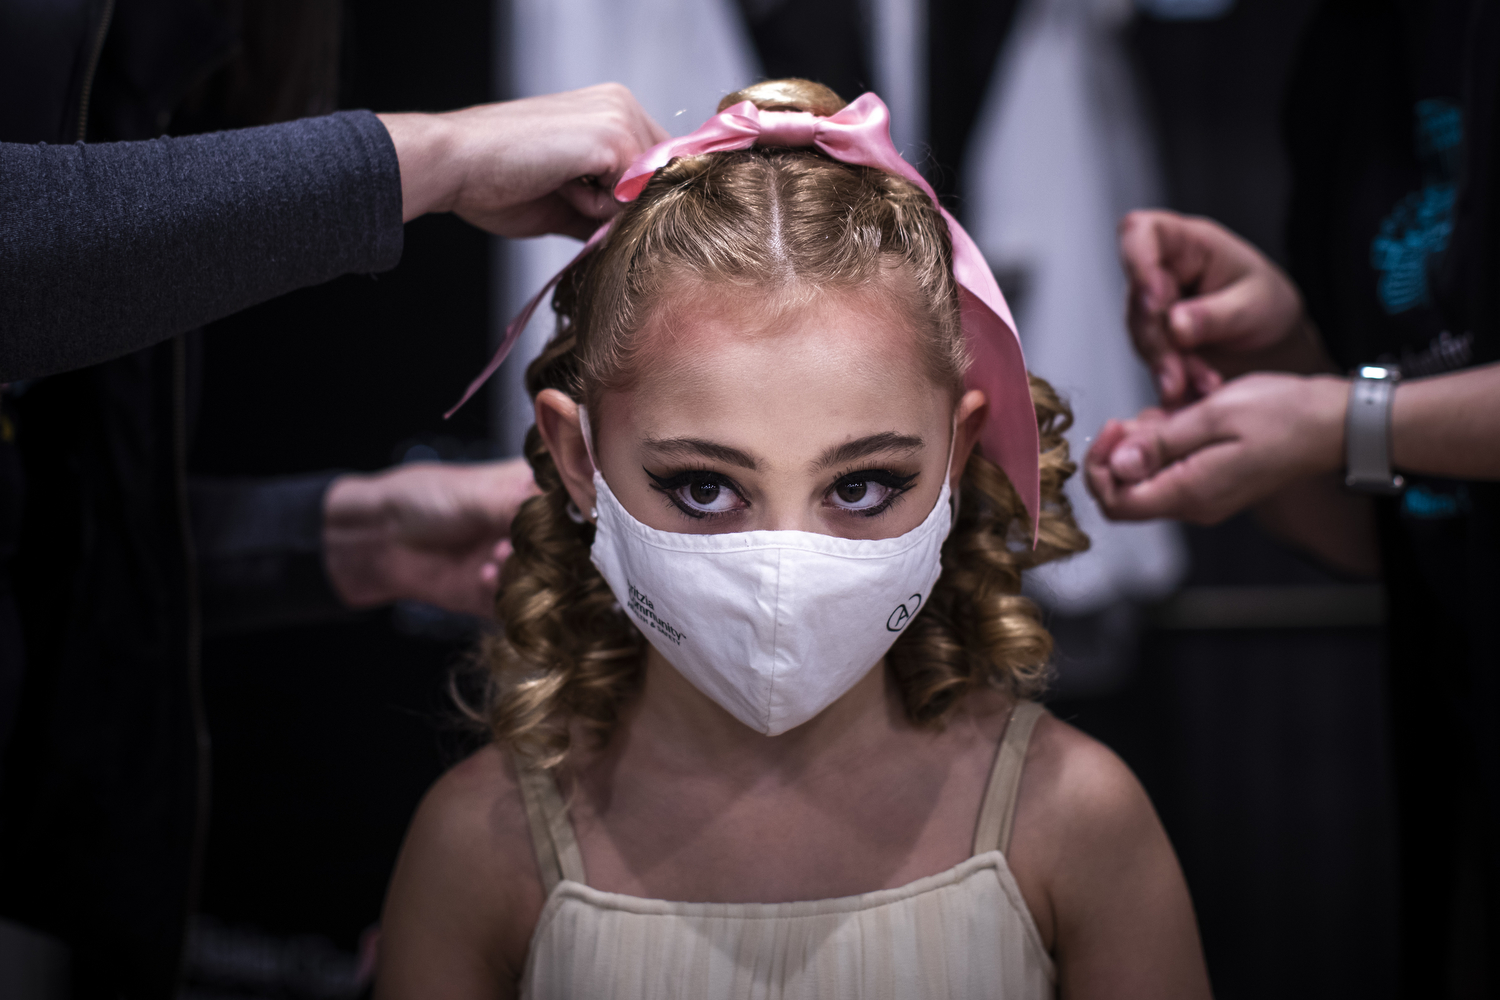 A performer in Goh Ballet's production of The Nutcracker on Nov. 13, 2020. It's being filmed in Vancouver this year due to the COVID-19 pandemic. (Ben Nelms/CBC Vancouver)